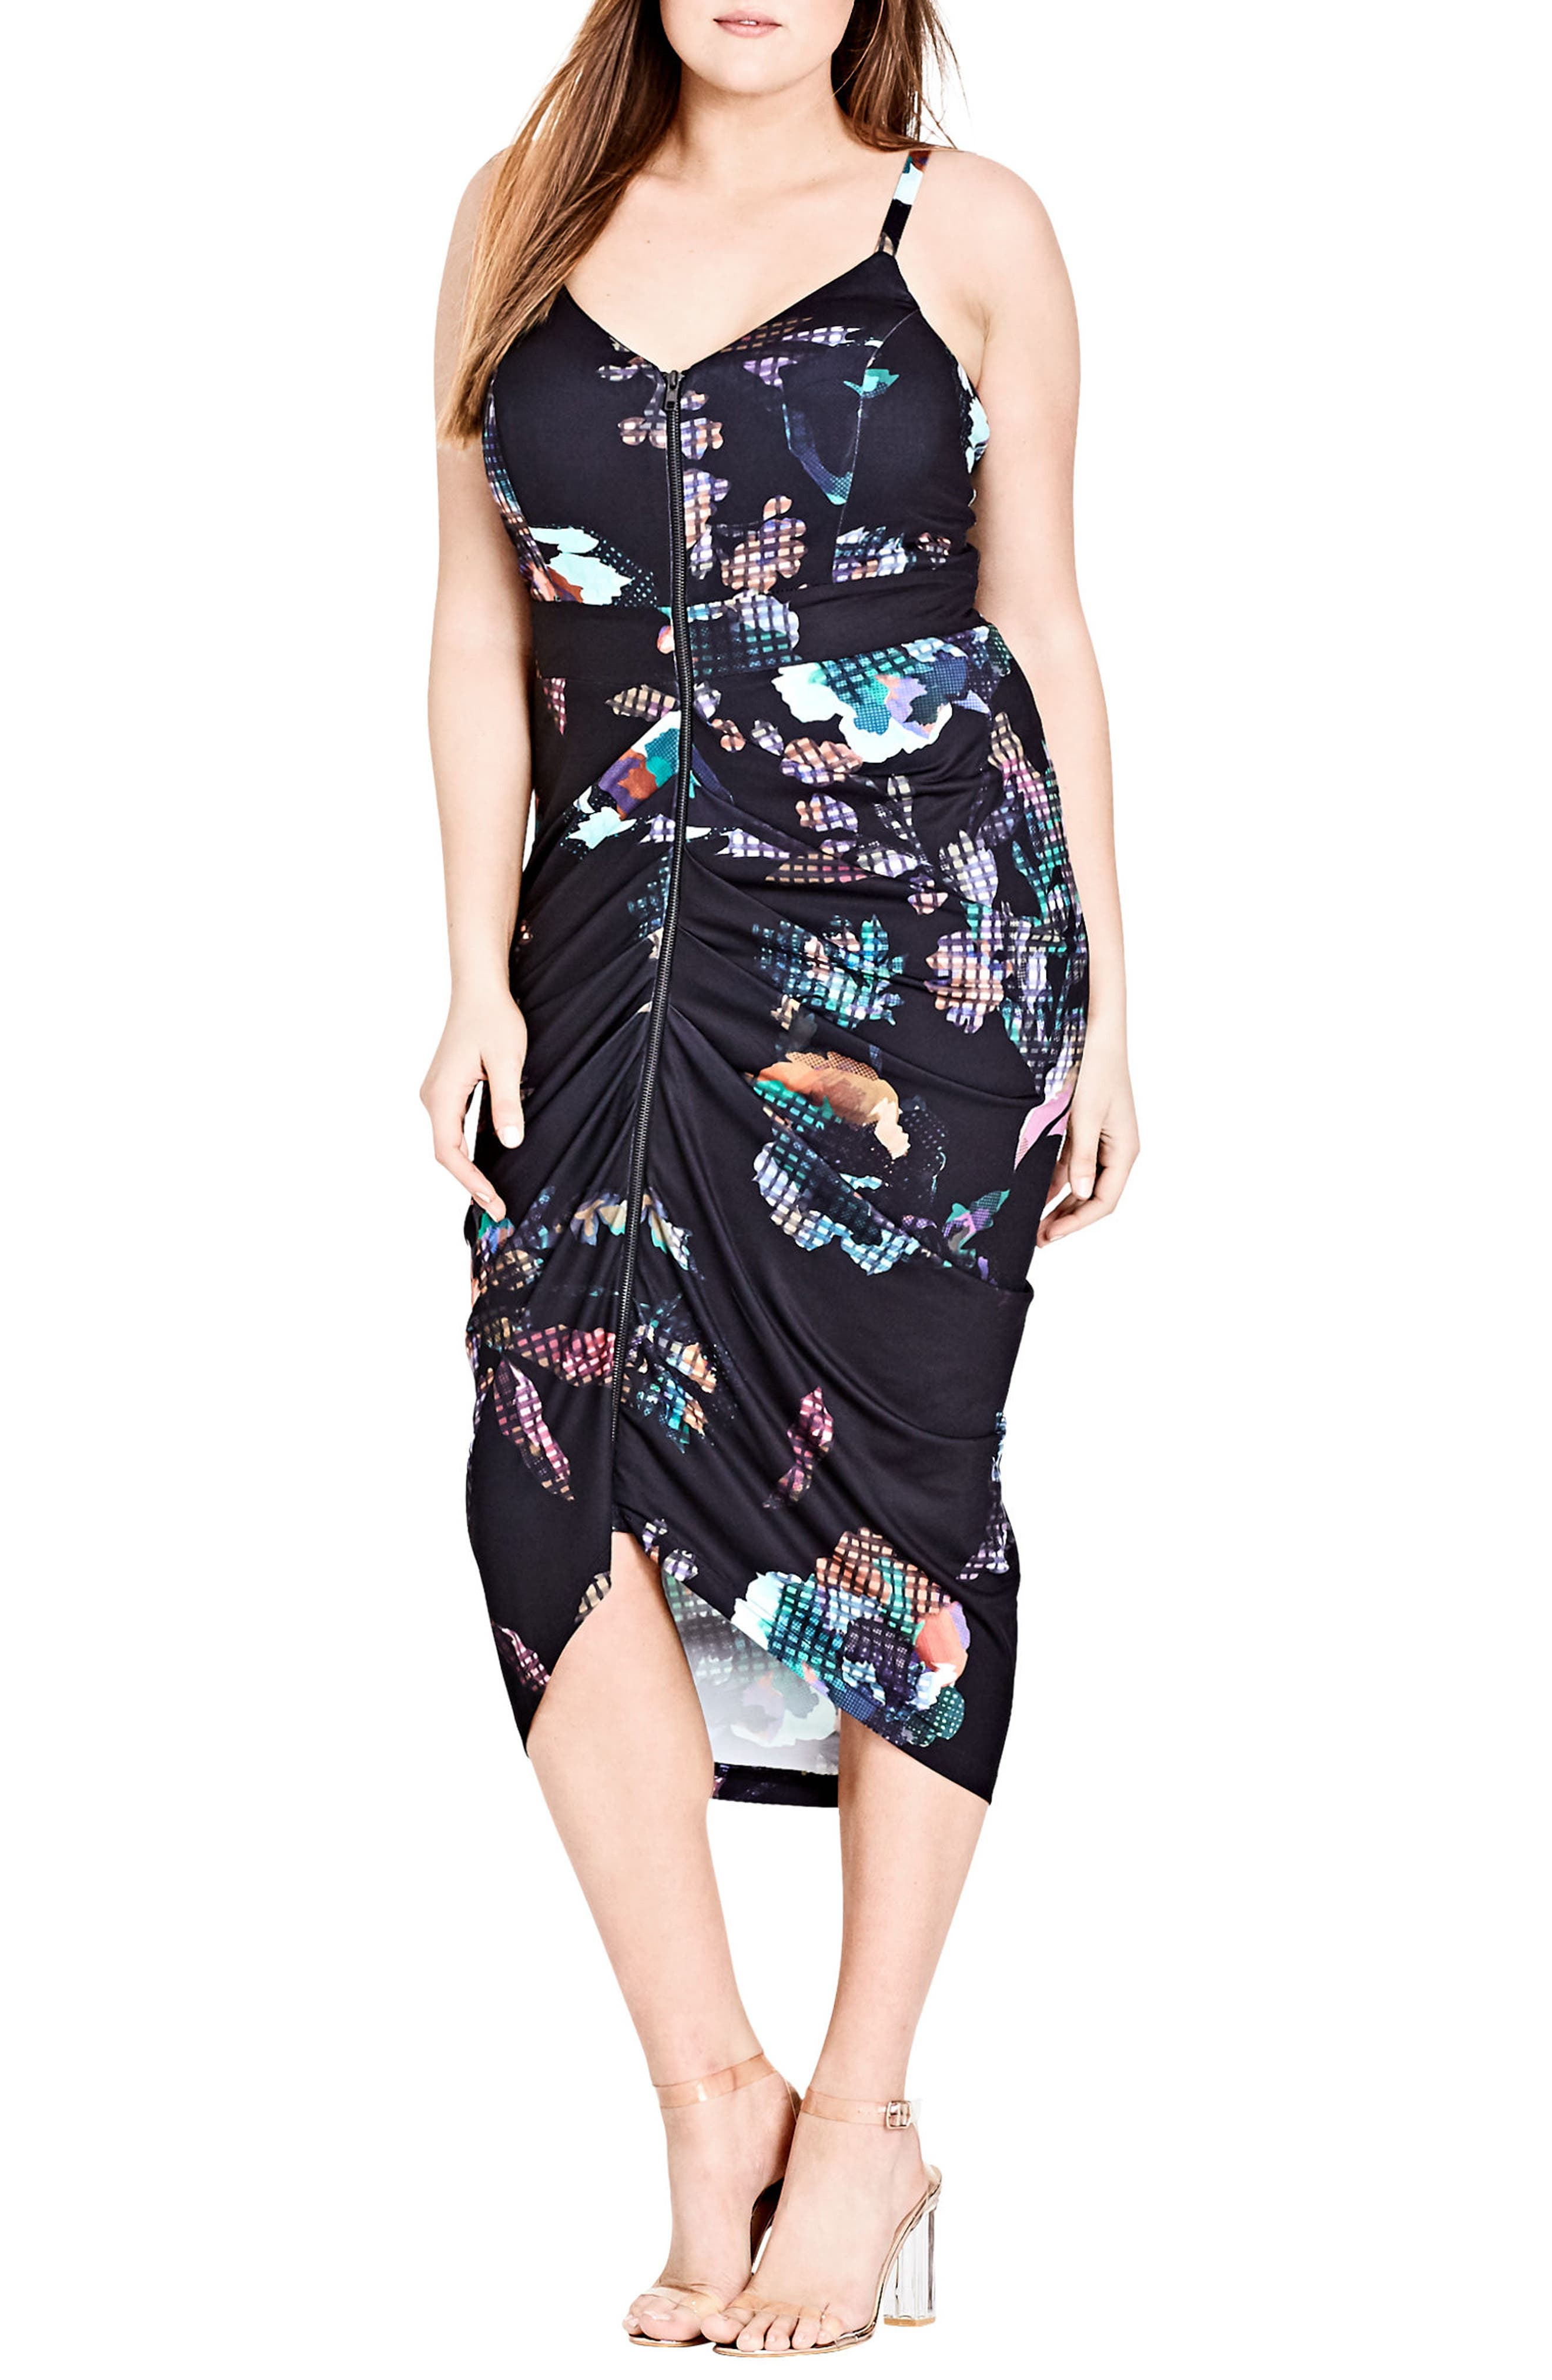 Alternate Image 1 Selected - City Chic Zip Front Digital Floral Dress (Plus Size)